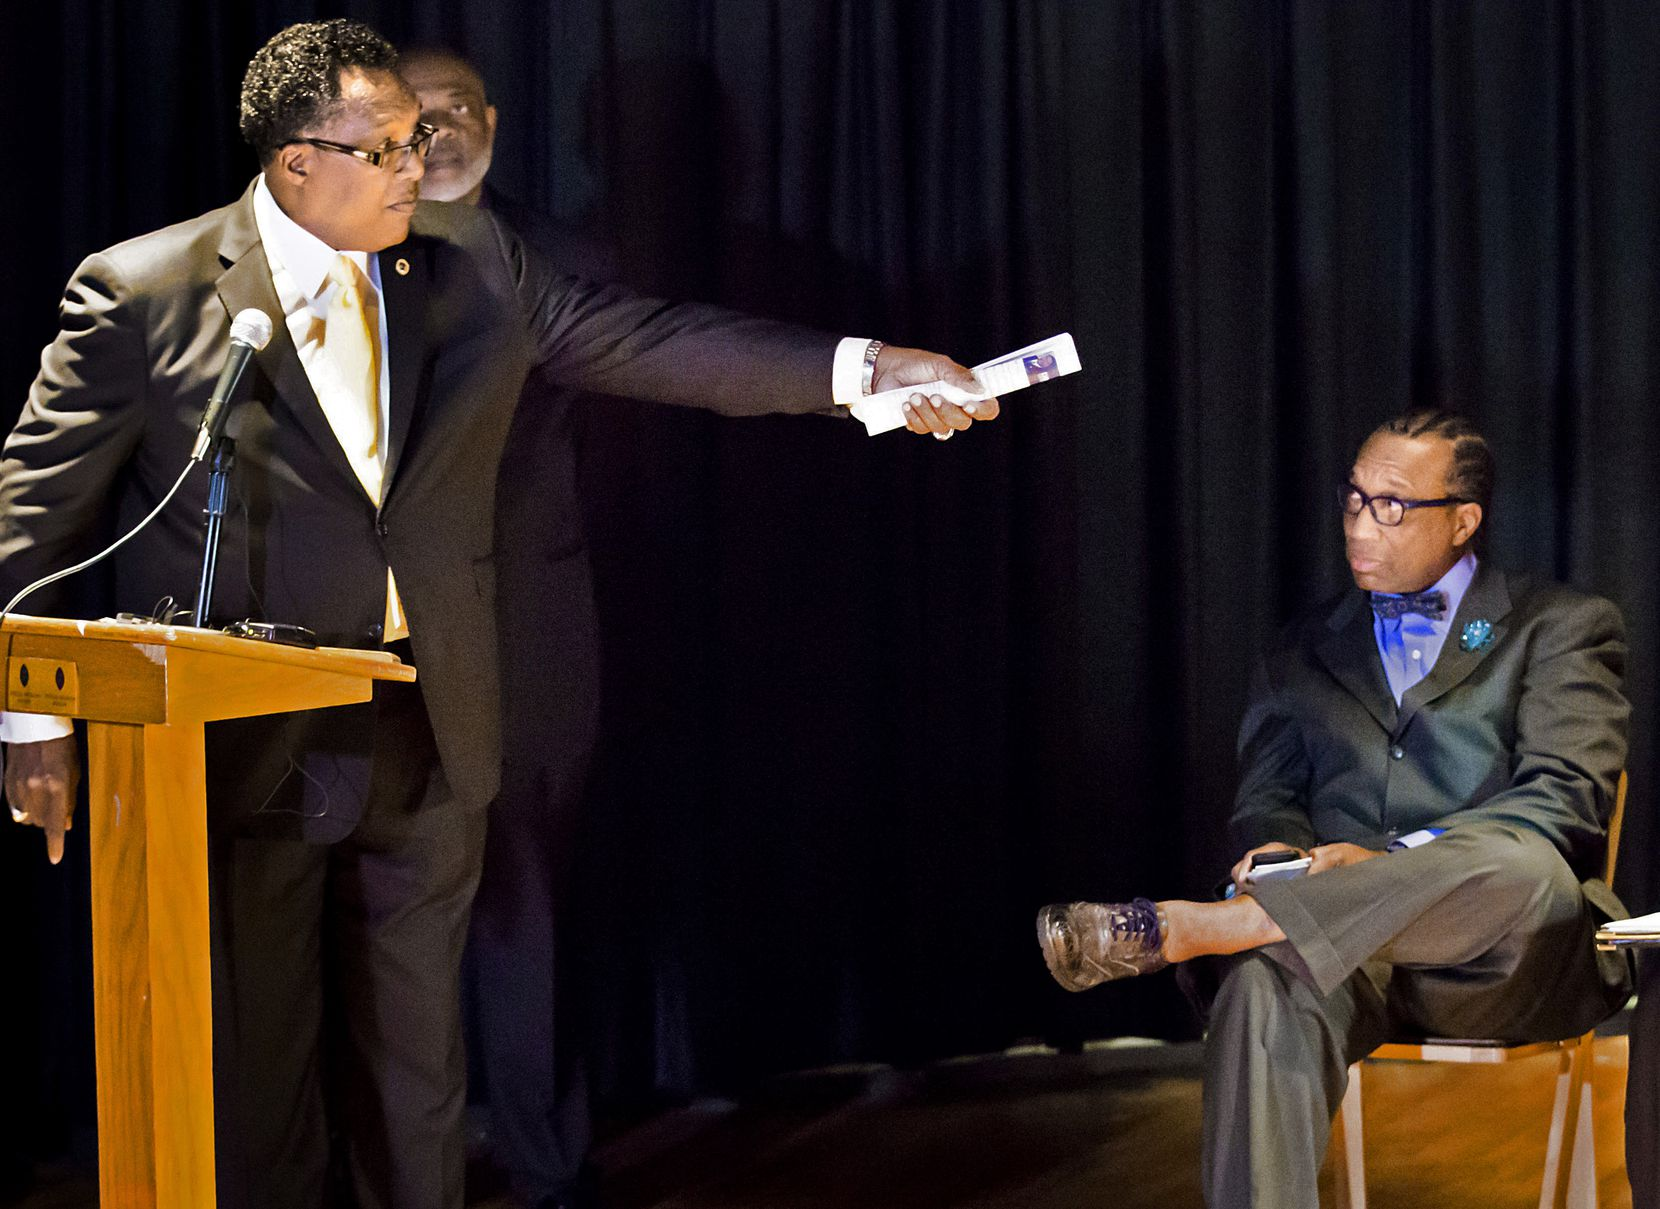 Dwaine Caraway (left) motions to incumbent John Wiley Price as Democratic primary candidates for Dallas County District 3 commissioner participate in a February 2016 candidate forum at the African American Museum in Fair Park.